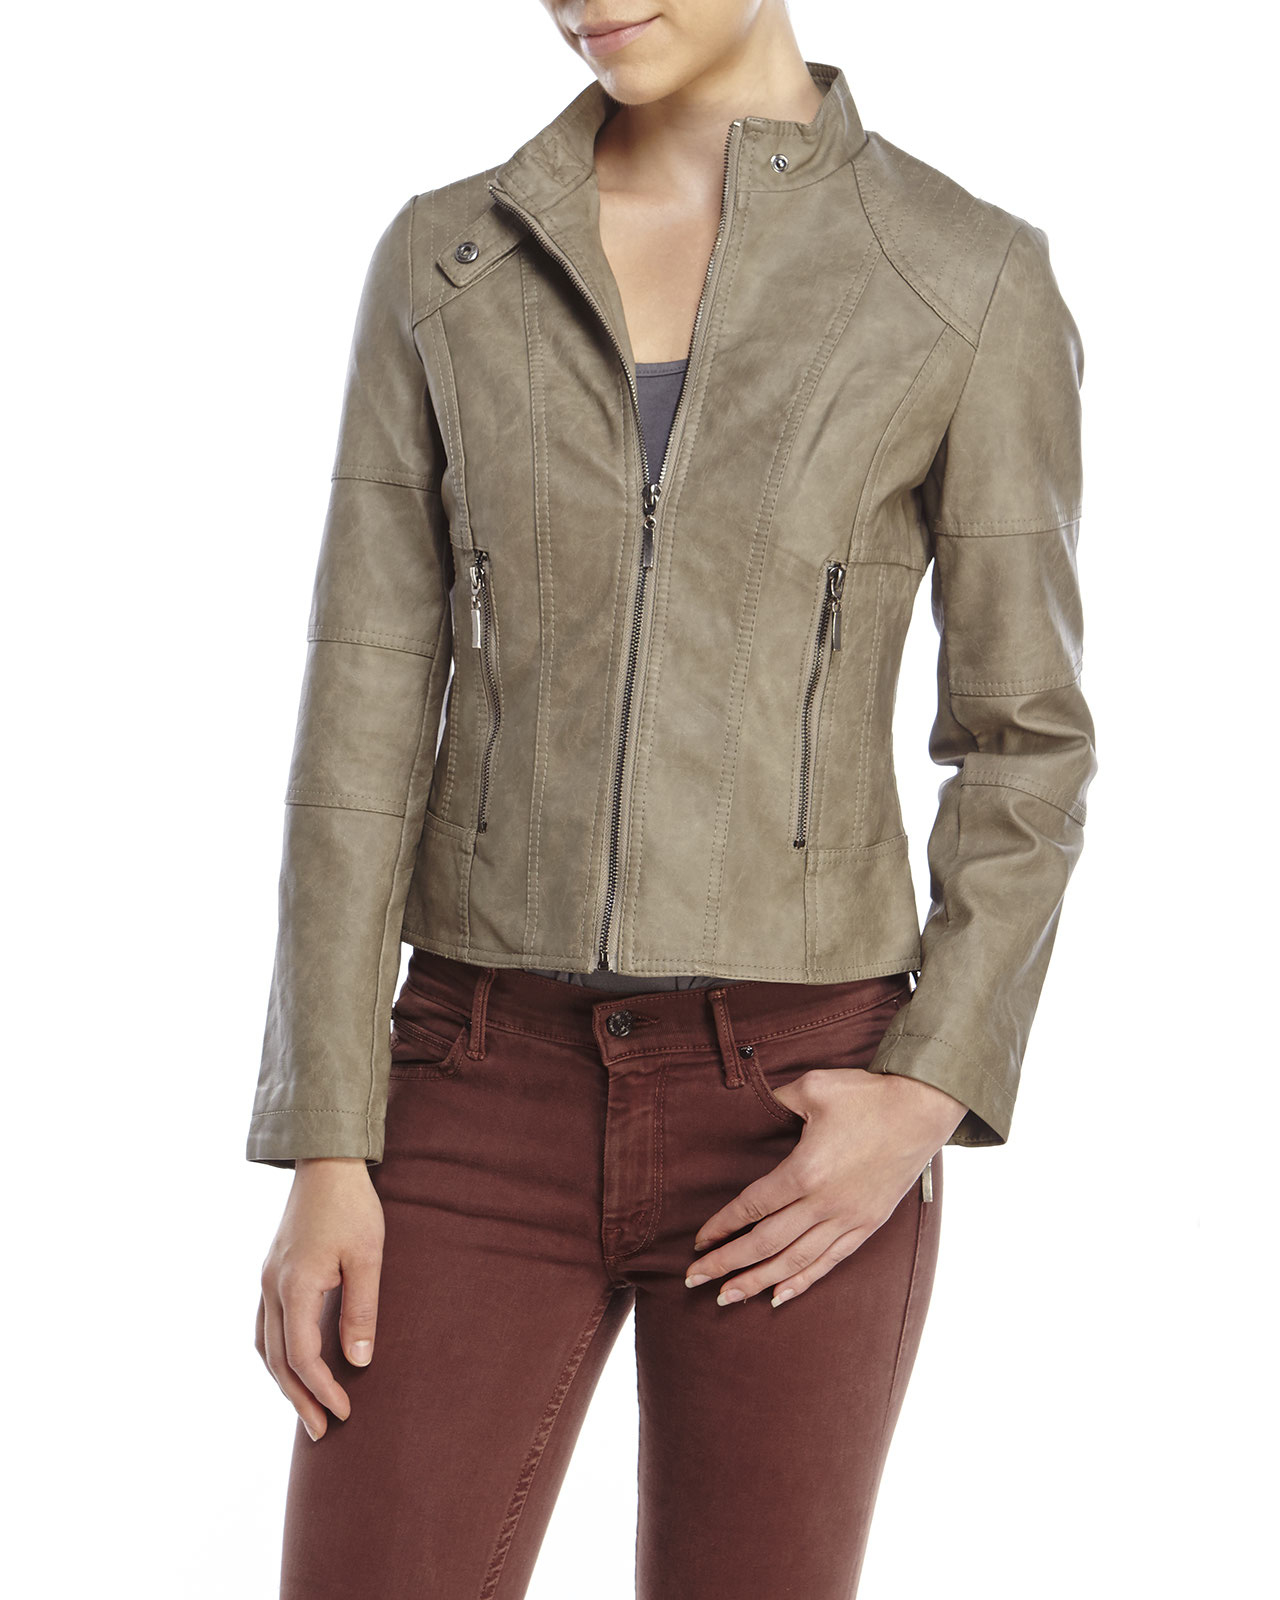 4913297f996 Lyst - Max Studio Petite Faux Leather Jacket in Gray